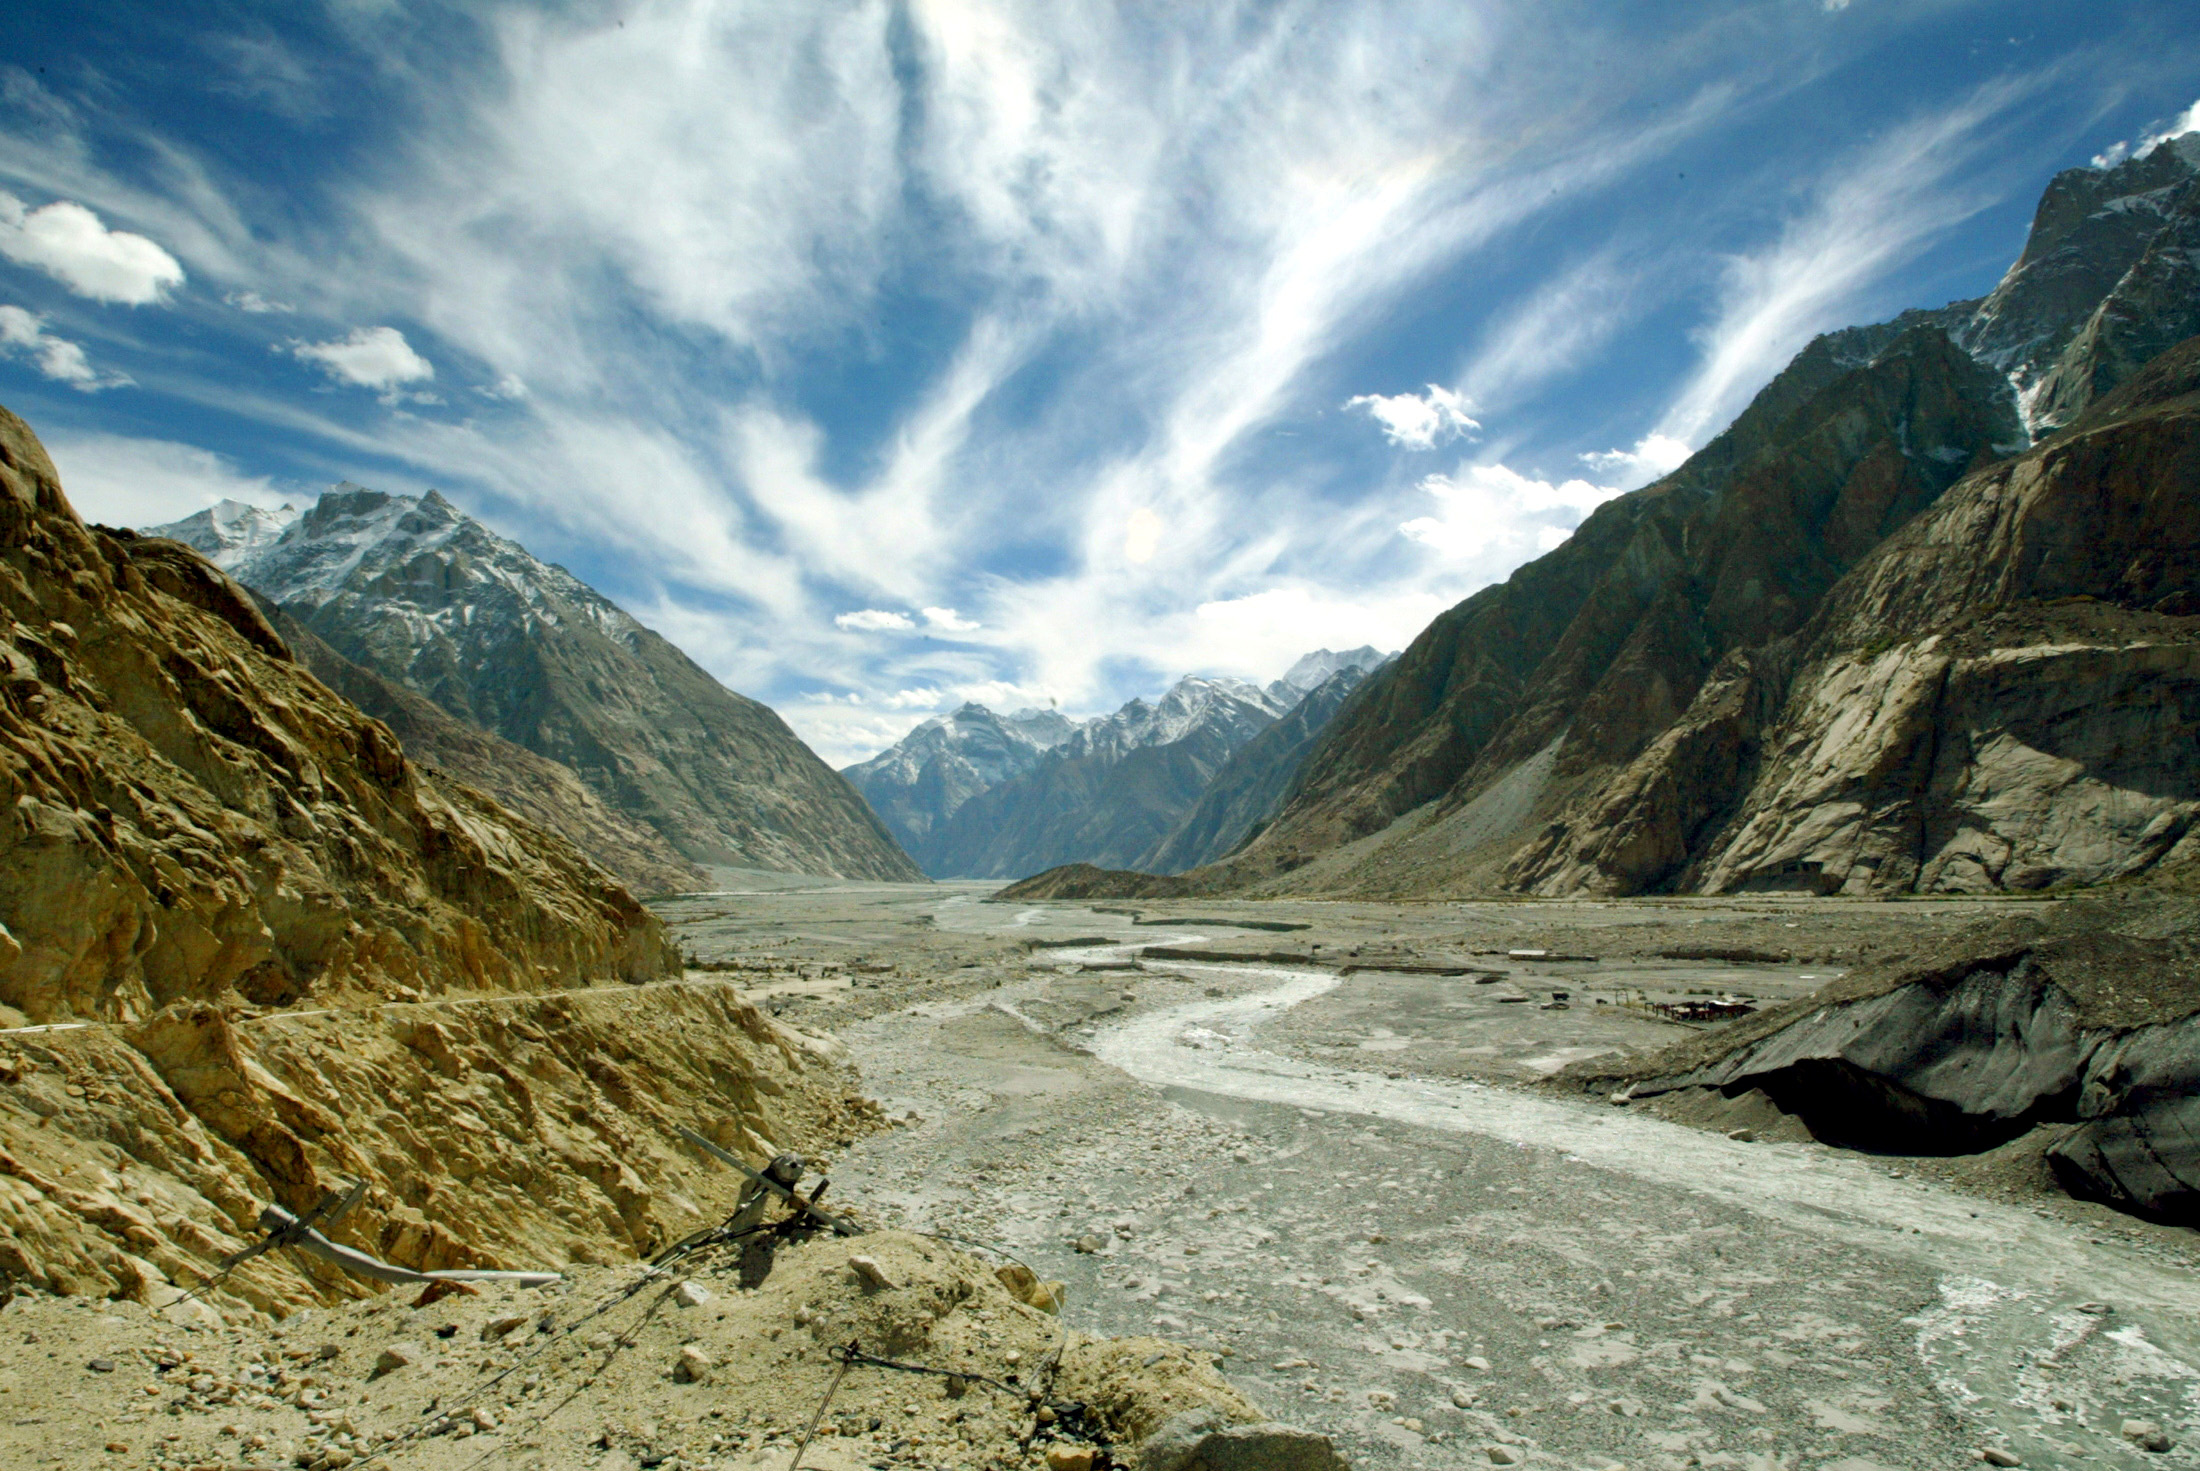 The Siachen Glacier, north of Indian state of Jammu and Kashmir. Since 1984, India and Pakistan have been fighting for control of the Siachen Glacier and the surrounding tangle of mountains